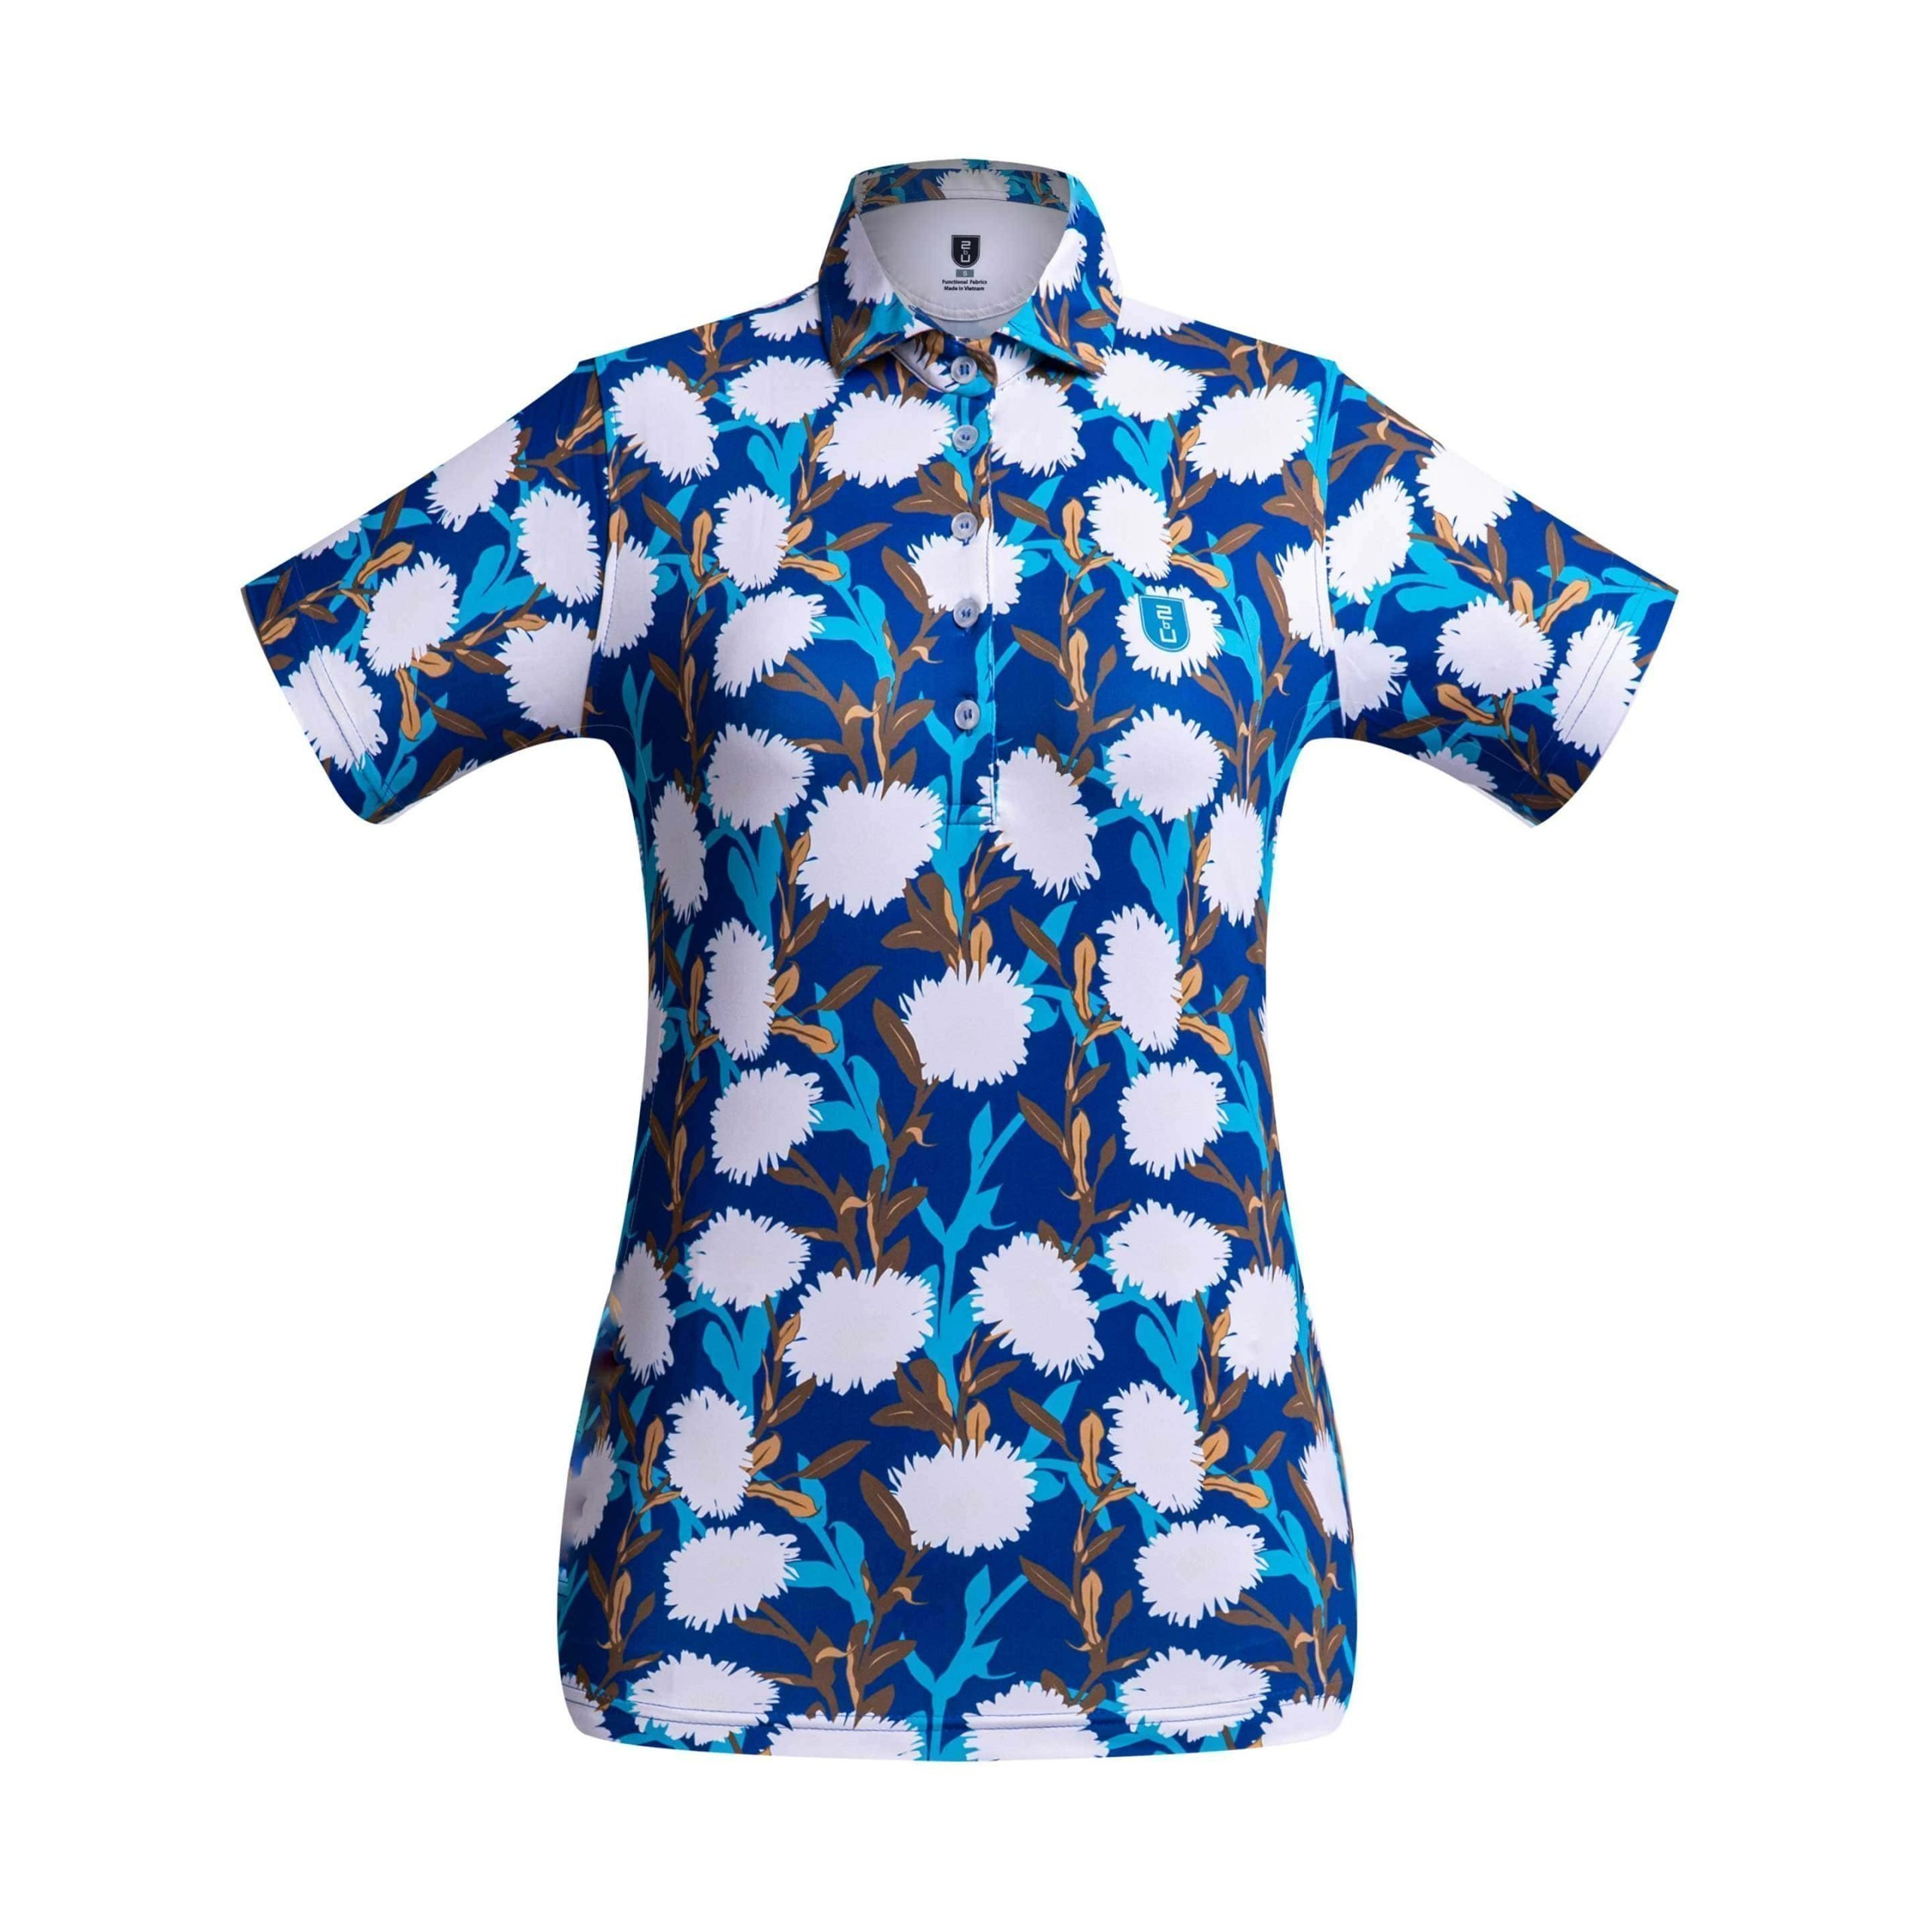 Golf shirt - Bright Blue Flower